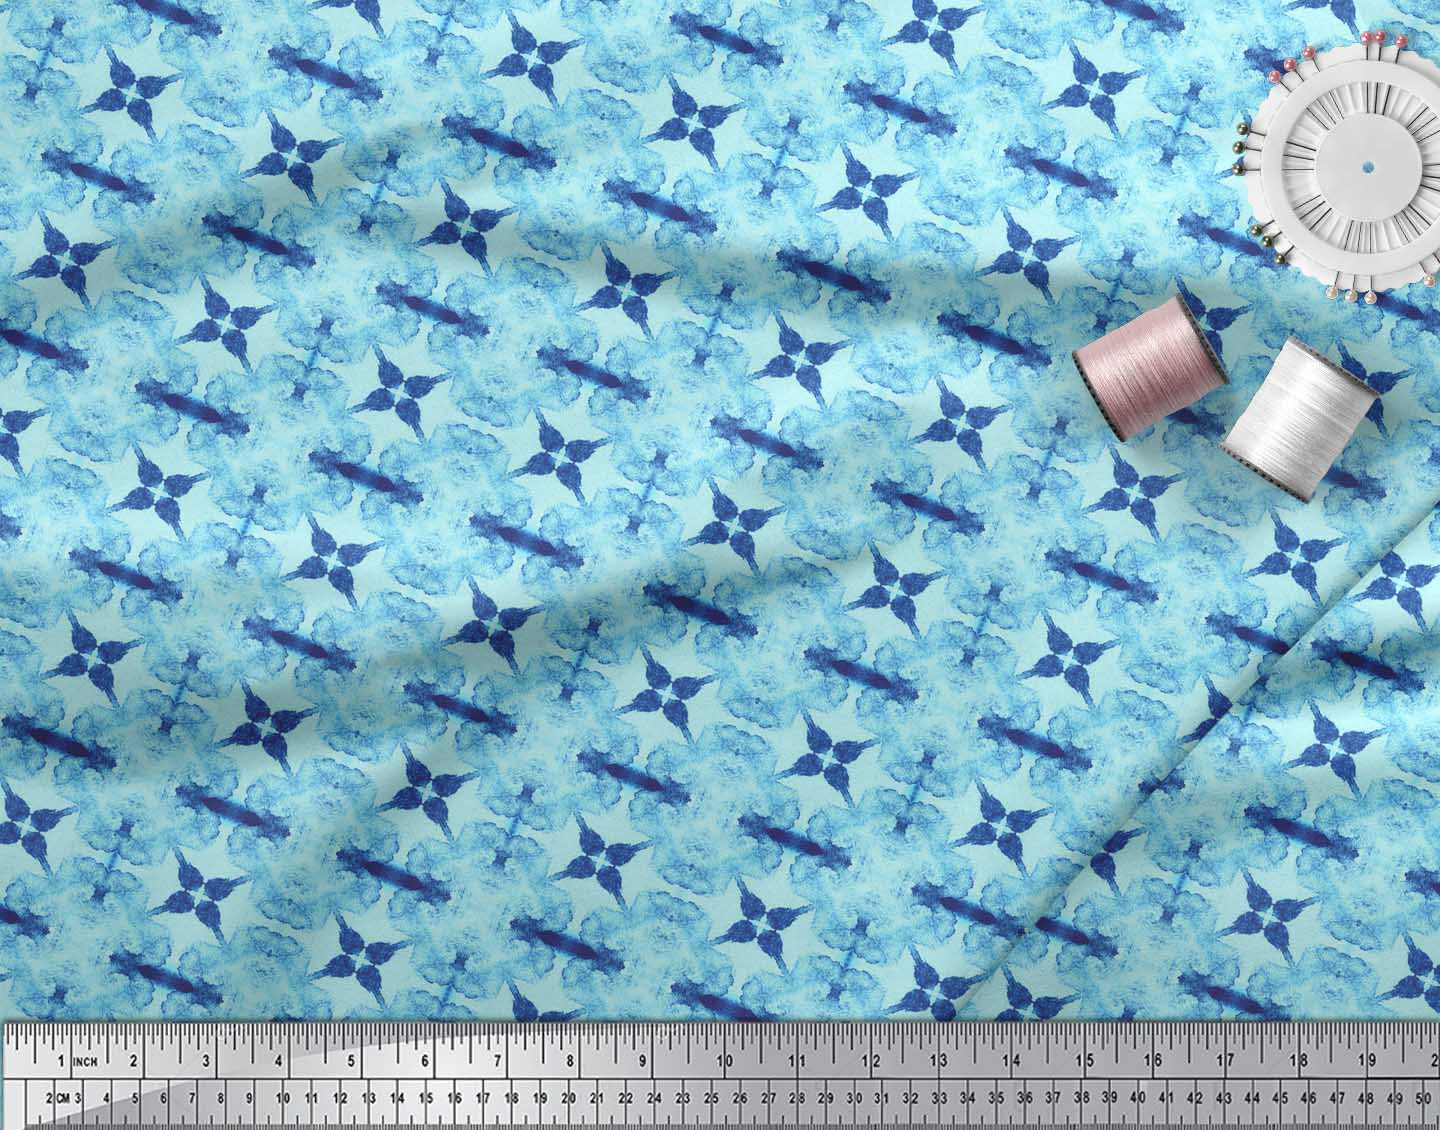 Soimoi-Blue-Cotton-Poplin-Fabric-Floral-Tie-Dye-Print-Fabric-by-pRn thumbnail 3